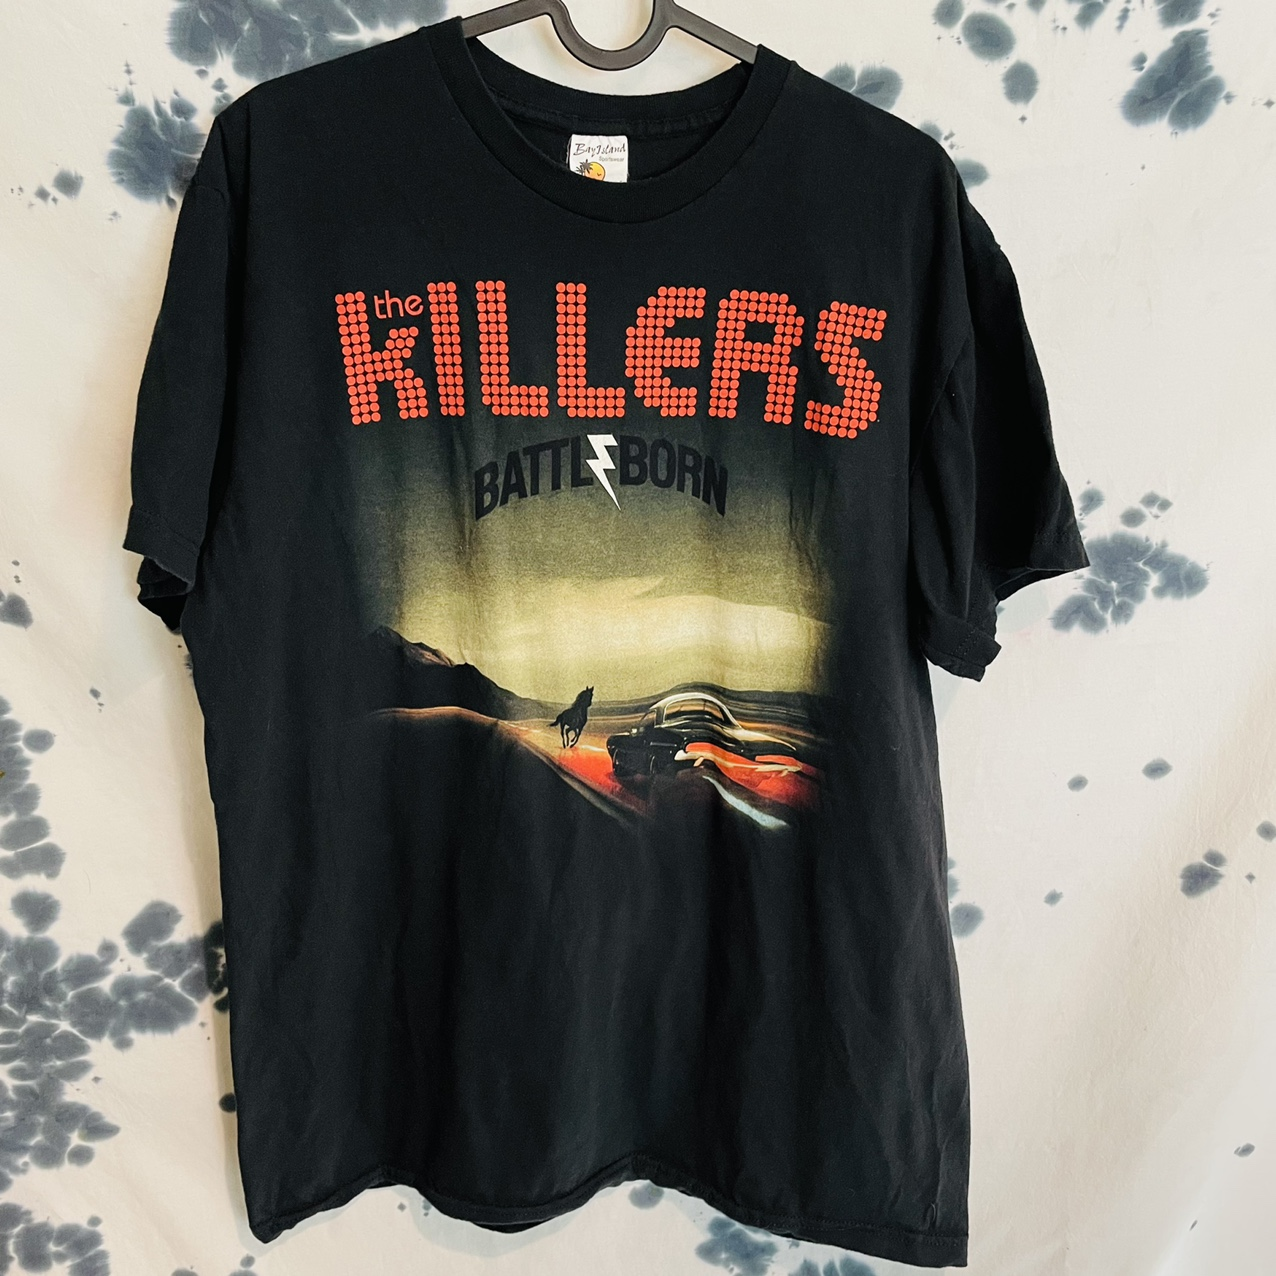 Product Image 1 - The Killers Battle Born 2013